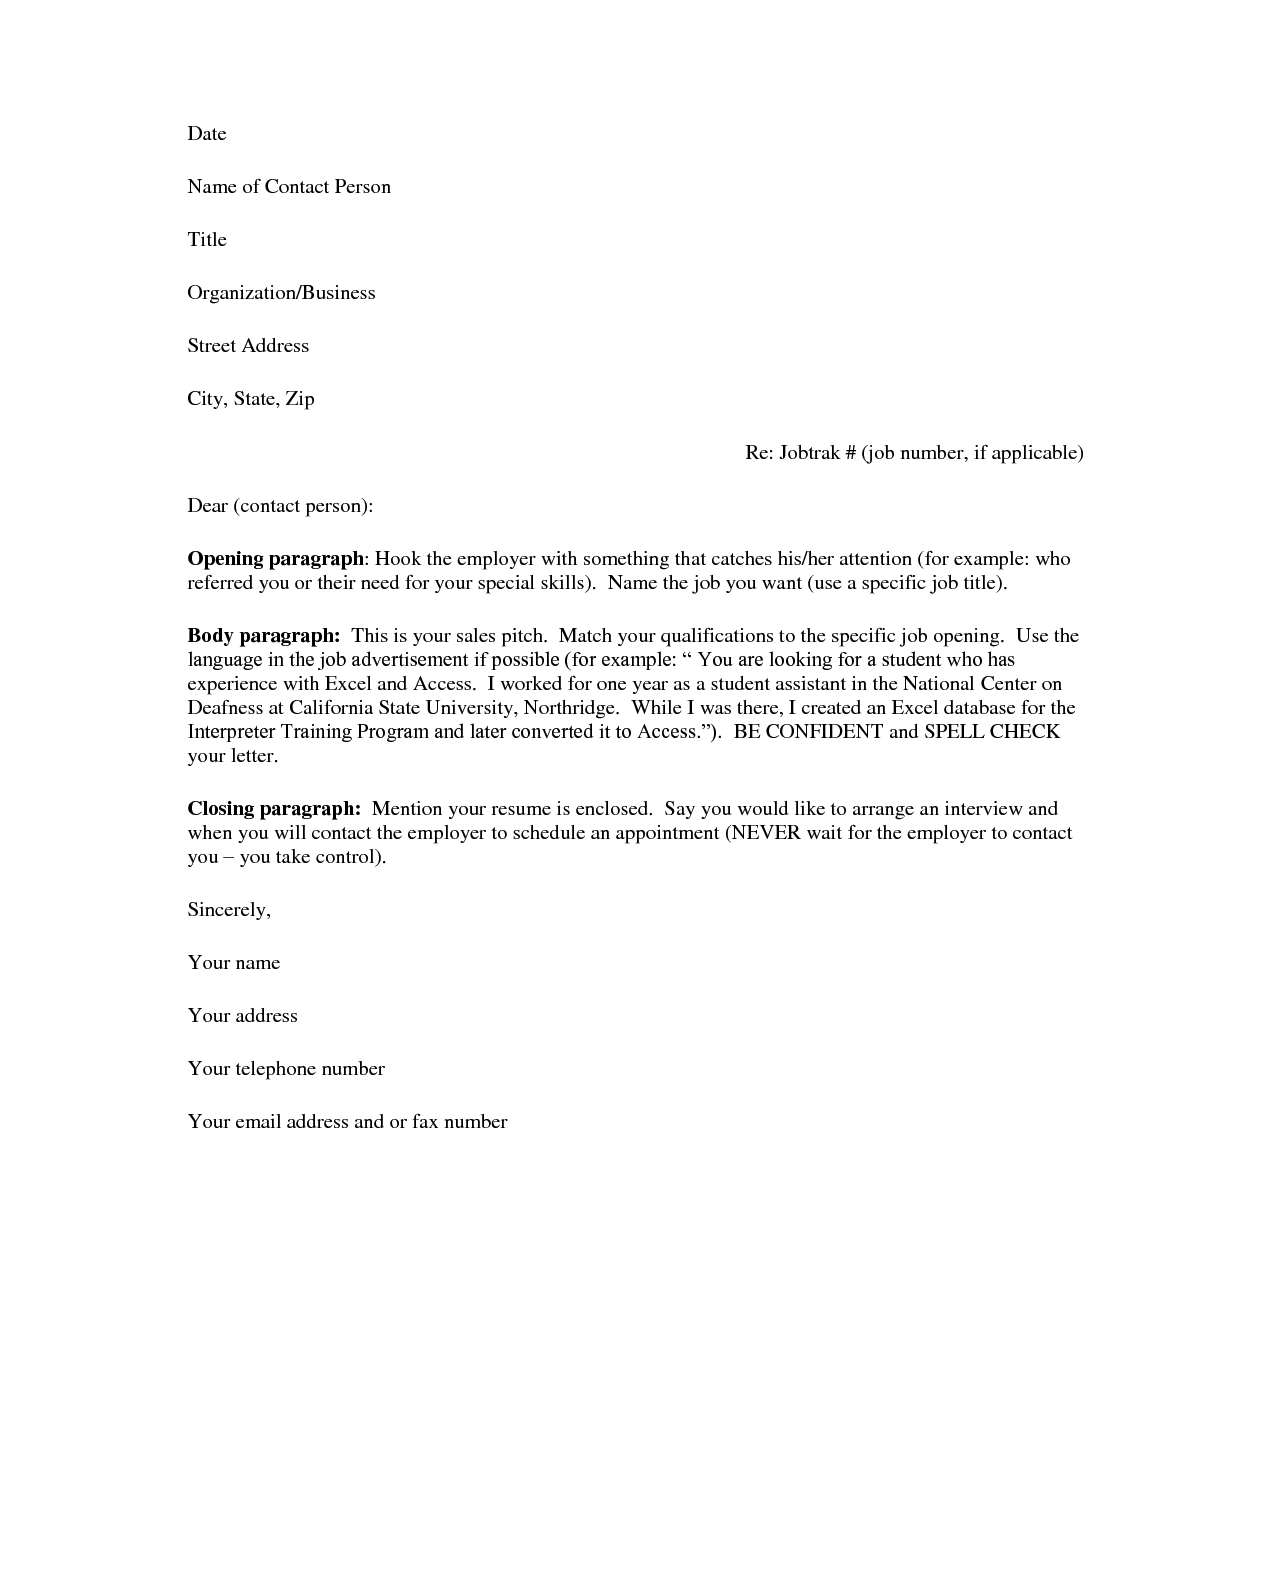 Sample Cover Letter Example Template: Resume Example, Urban Pie Resume Cover Letter Example